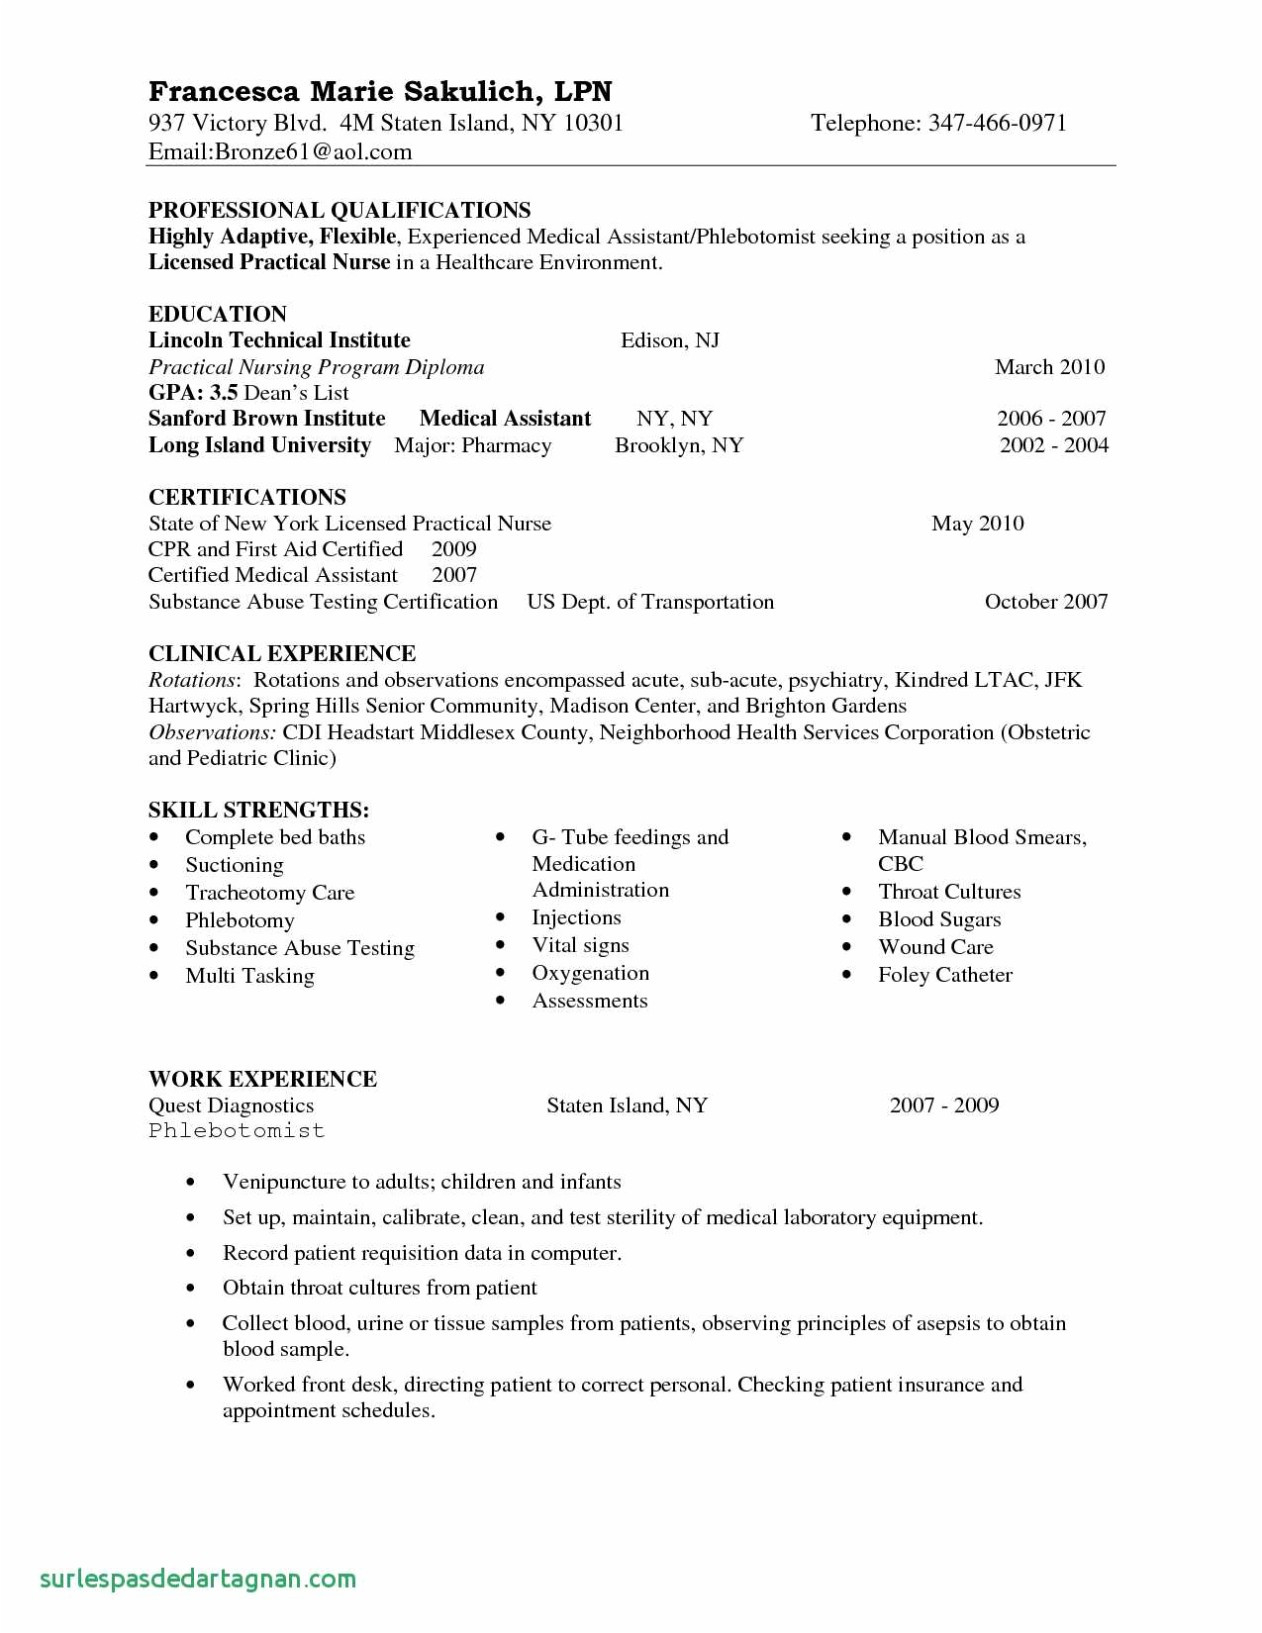 Certified Medical assistant Resume Template - Awesome New Grad Nursing Resume Template